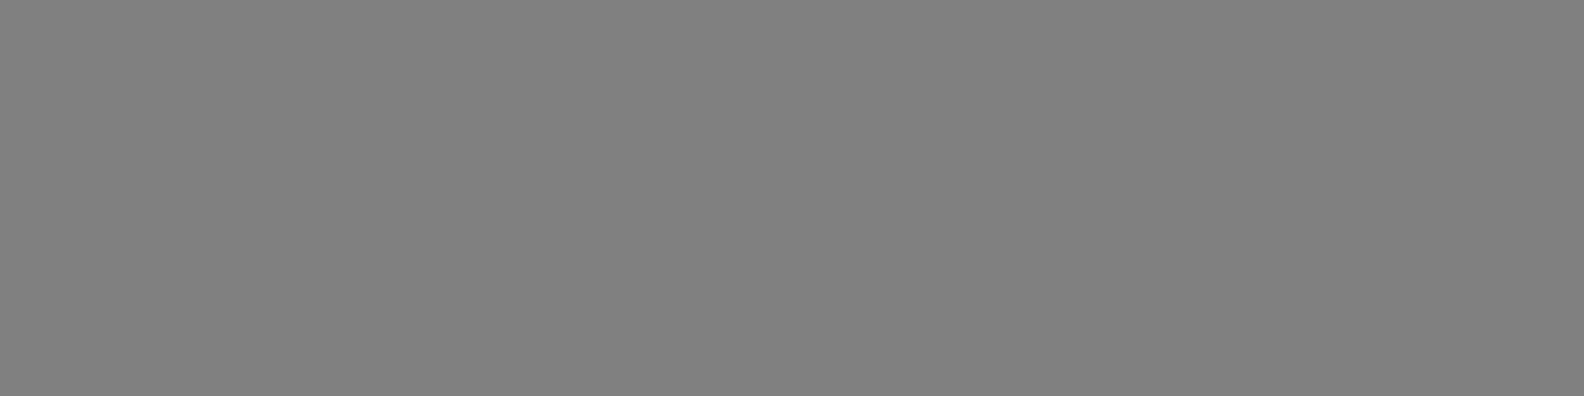 1584x396 Gray Web Gray Solid Color Background